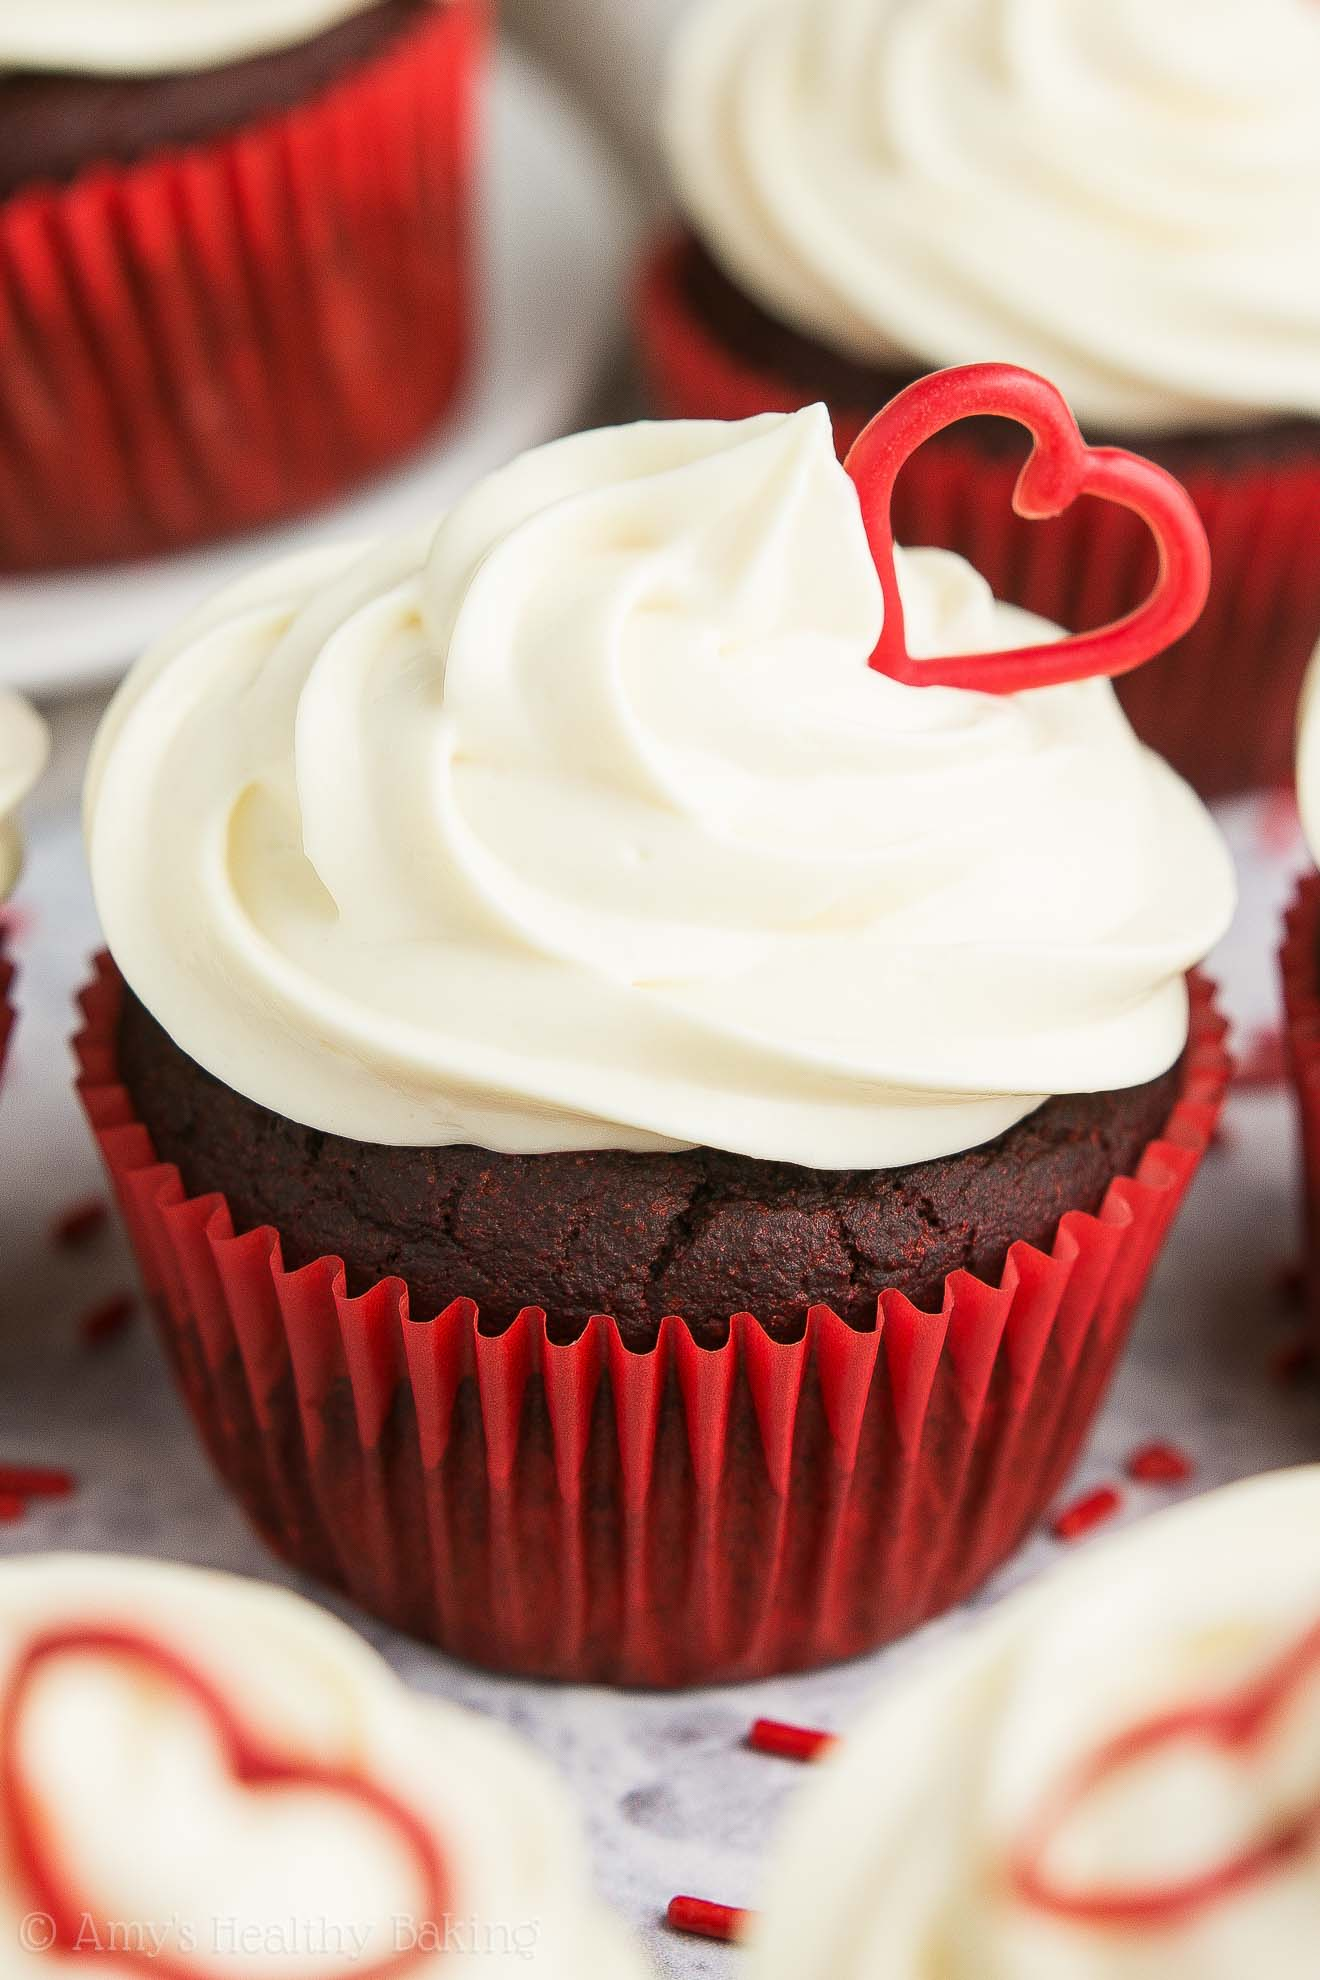 The ULTIMATE Healthy Red Velvet Cupcakes, topped with sweet cream cheese frosting